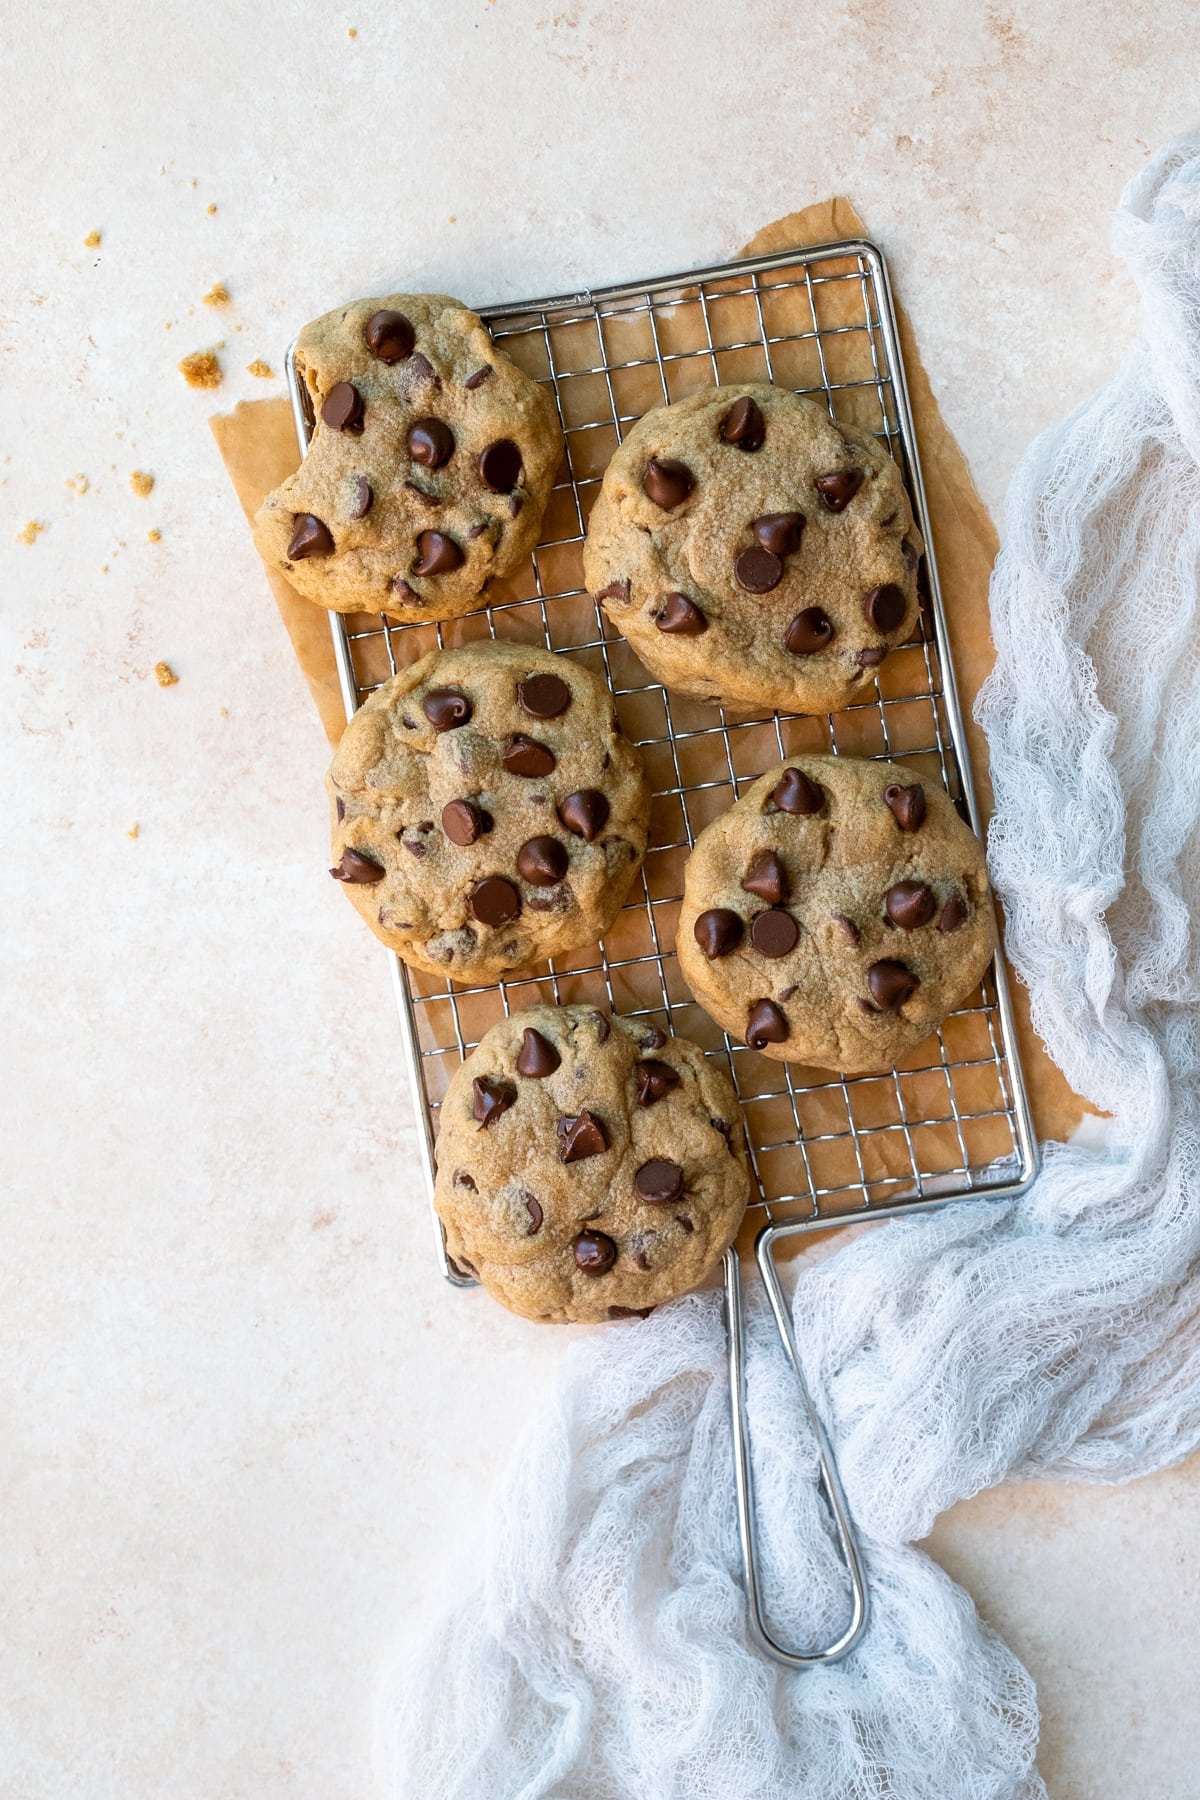 Cookies on a metal grater, set over a brown piece of parchment, with a white linen to the side.